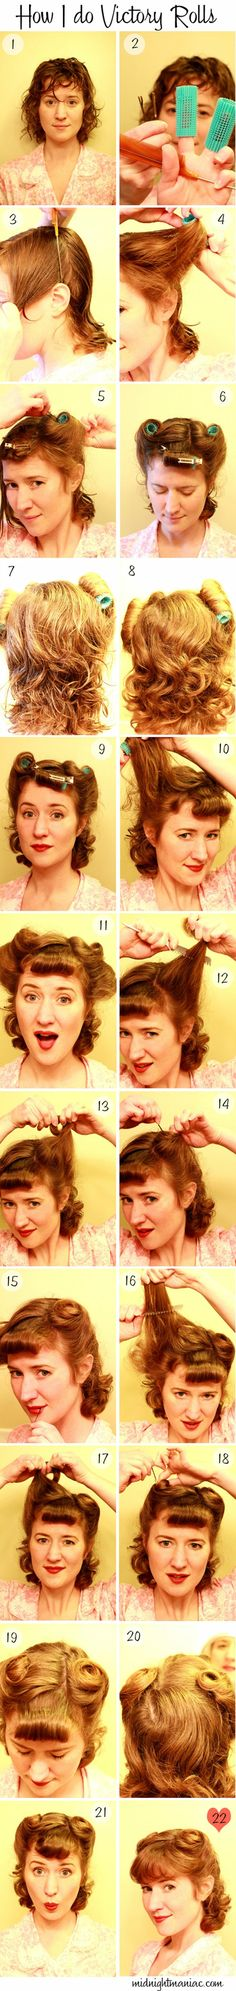 victory rolls retro tutorial